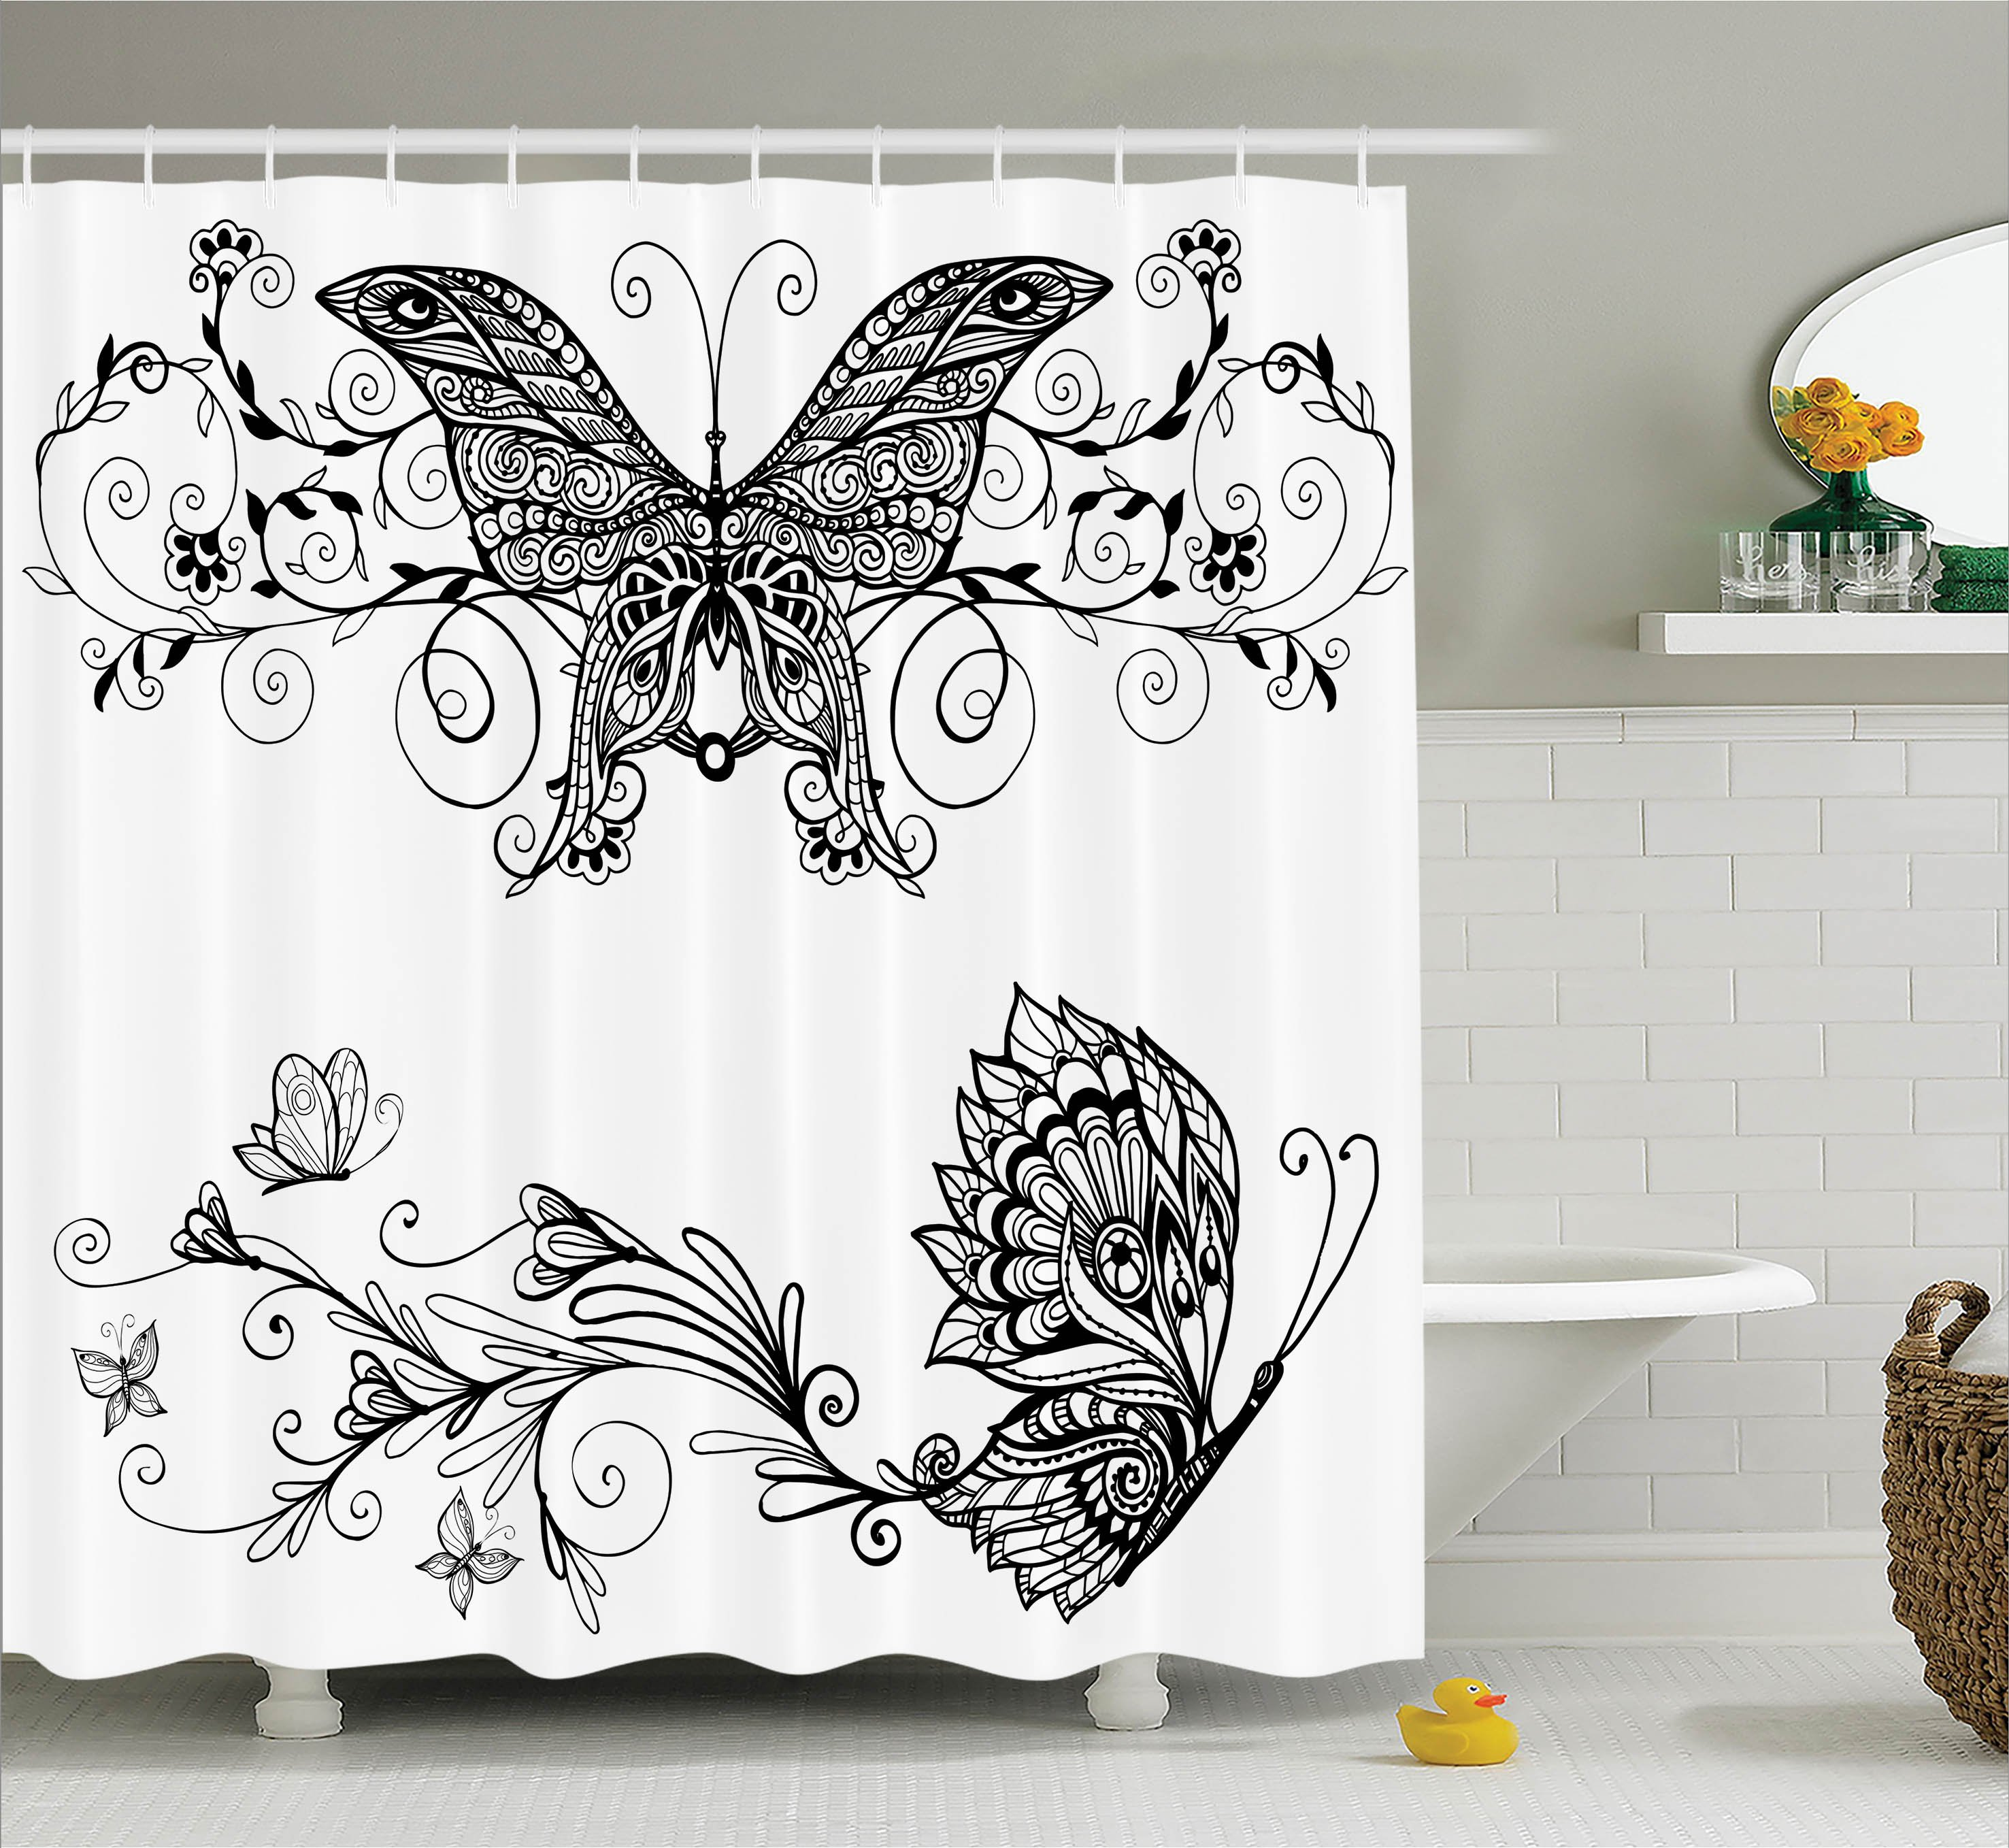 House Decor Shower Curtain, Butterfly Floral Mandala Patterns Bohem  Decorations Butterfly Wings Picture, Fabric